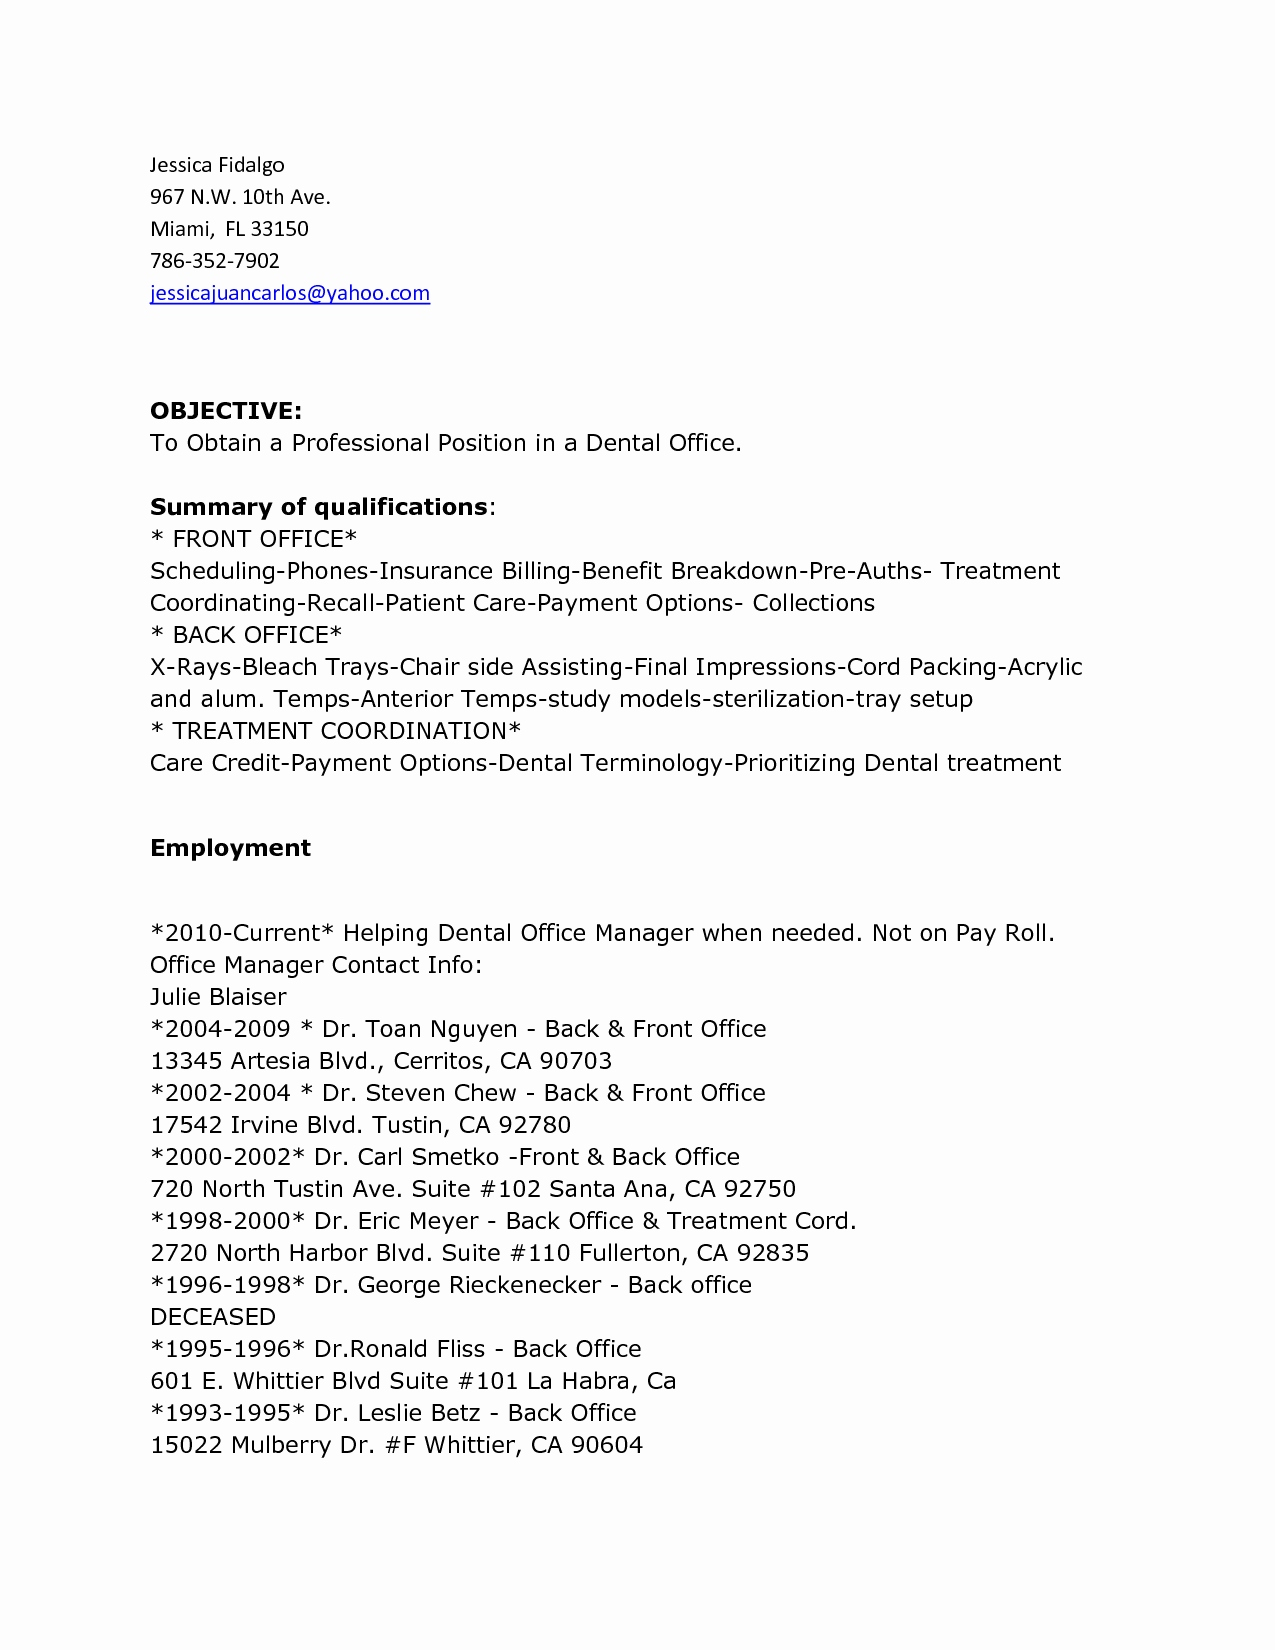 Patient Recall Letter Template - Fice Manager Resume Summary Front Office Manager Resume Sample